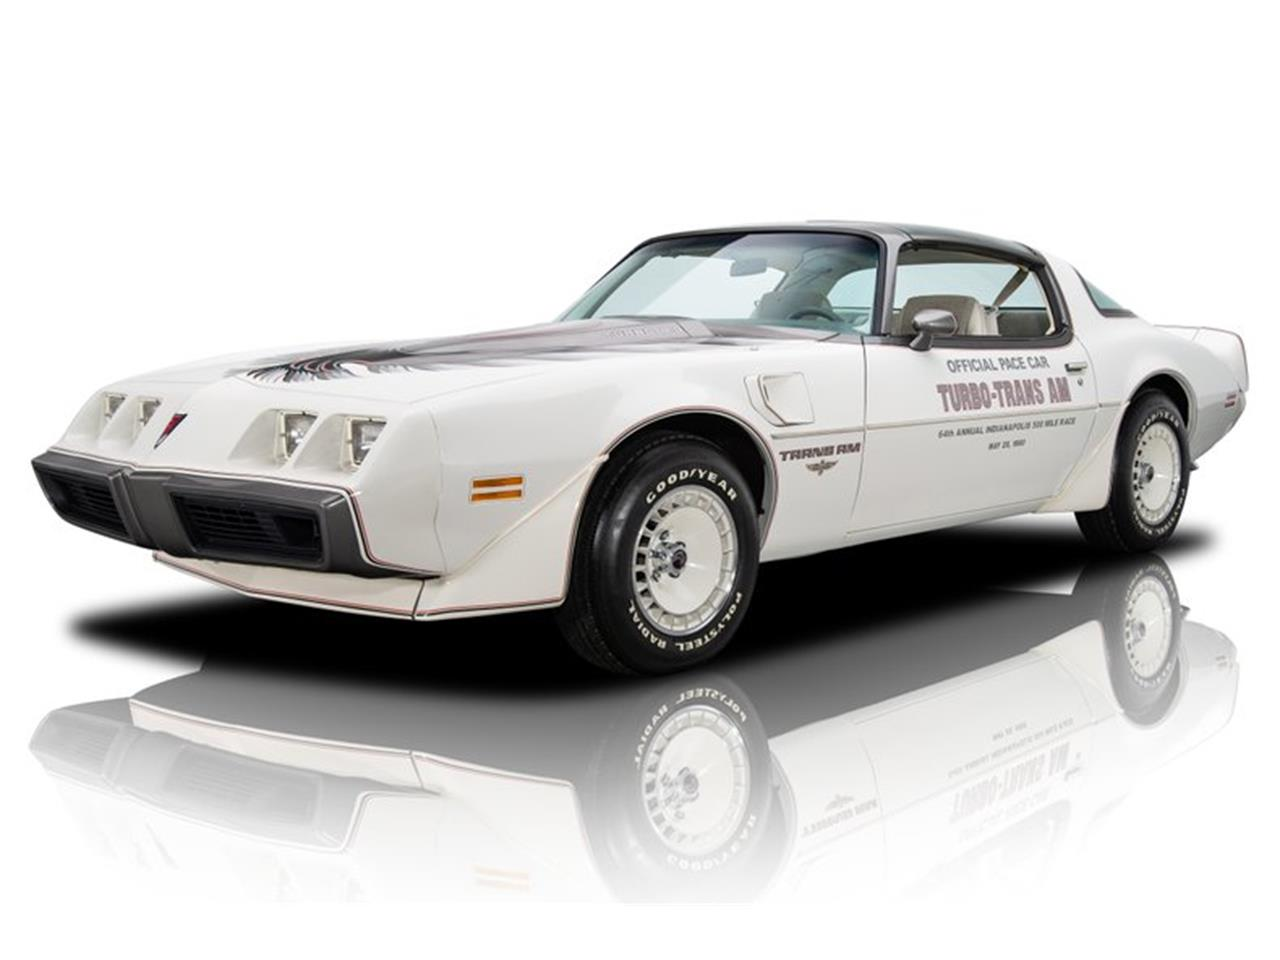 1980 Pontiac Firebird Trans Am Turbo Indy Pace Car Edition for sale in Charlotte, NC